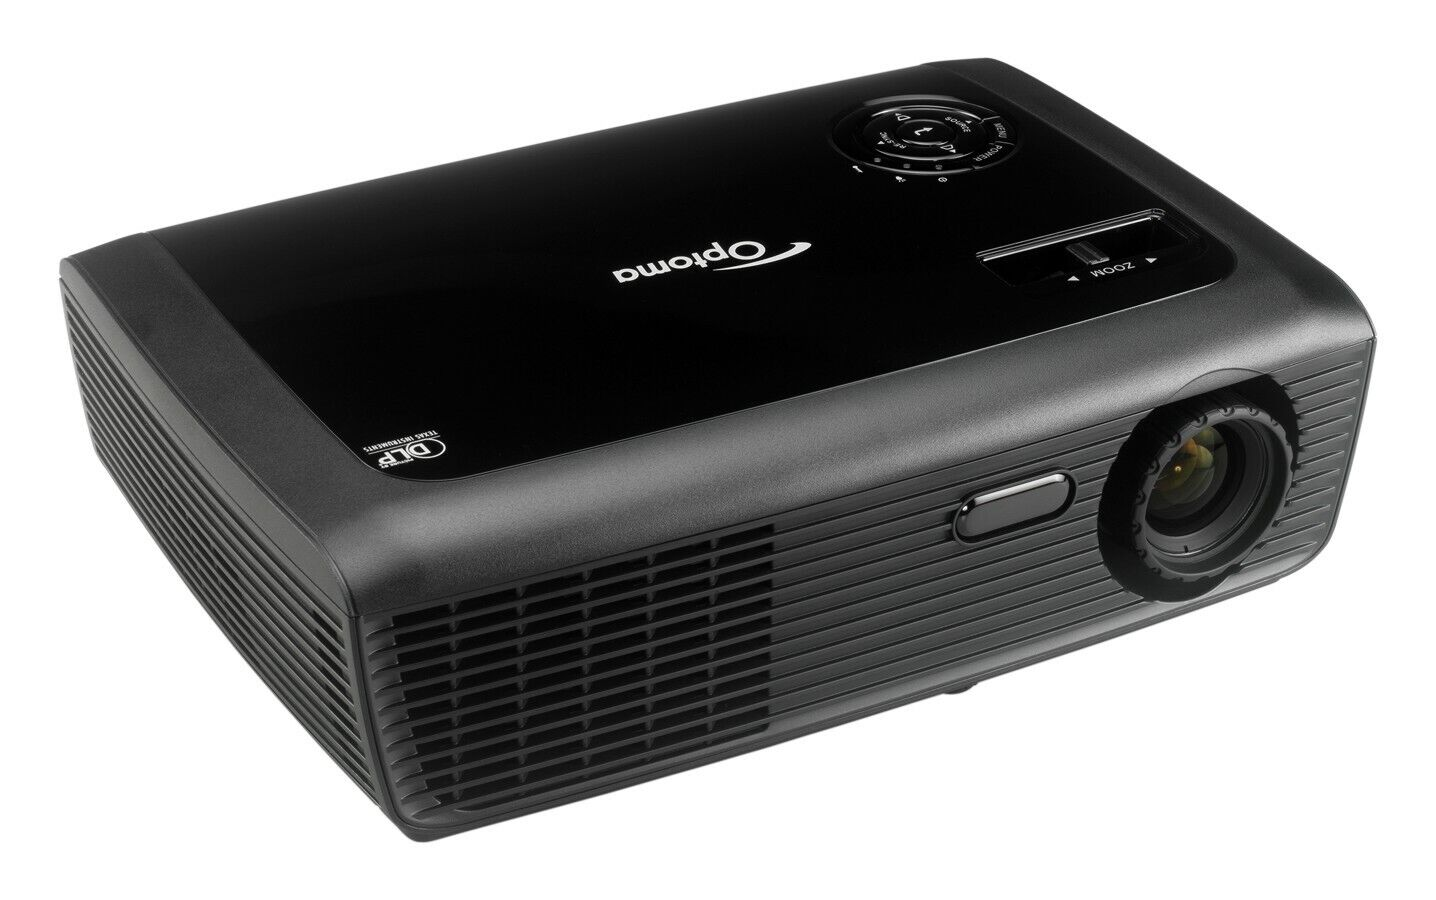 HD OPTOMA EX531p DLP PROJECTOR 2,600 LUMENS VERY BRIGHT 1080i 720p